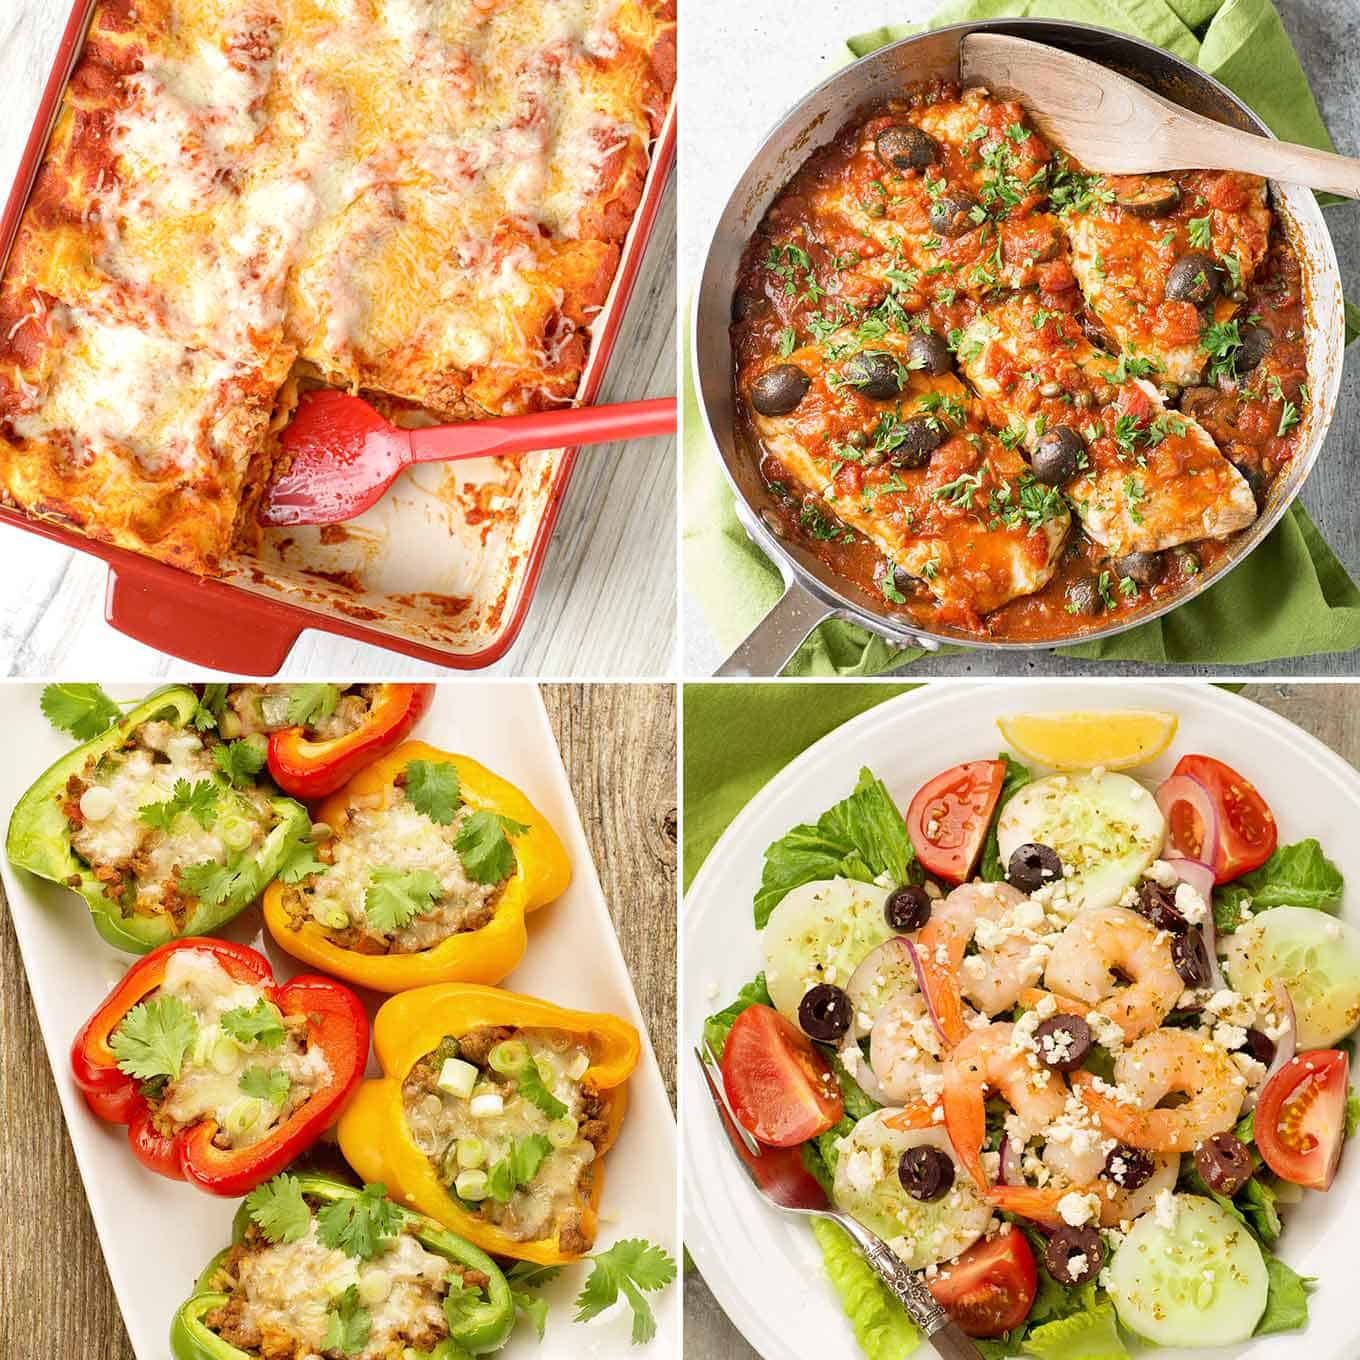 Collage featuring sausage lasagna, fish puttanesca, Mexican stuffed peppers, and classic Greek salad with shrimp.